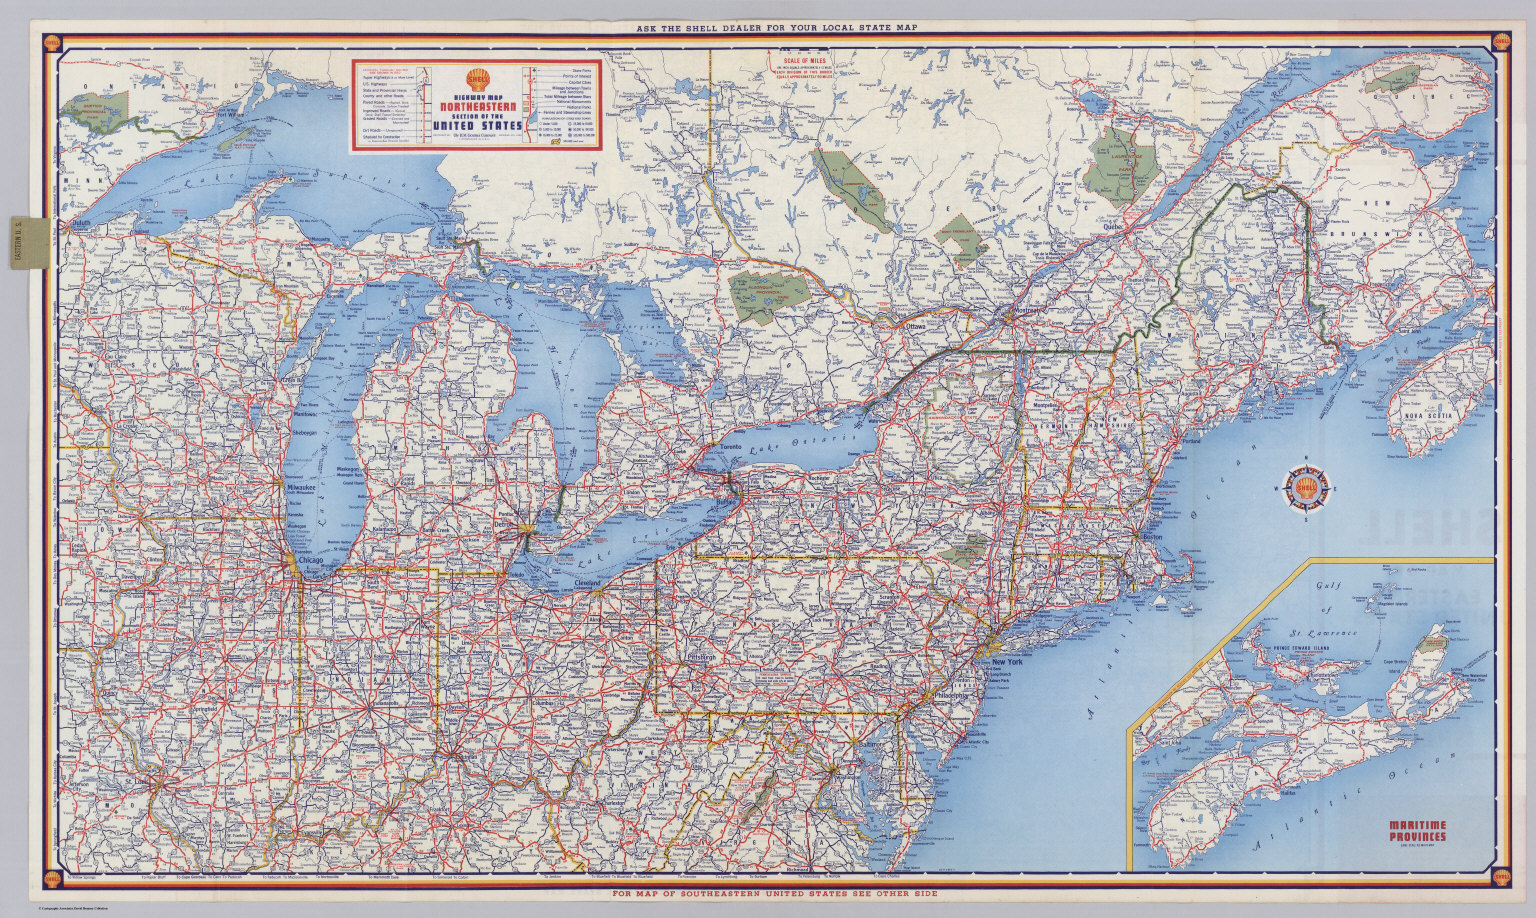 Shell Highway Map Northeastern Section Of The United States - Northeastern usa map